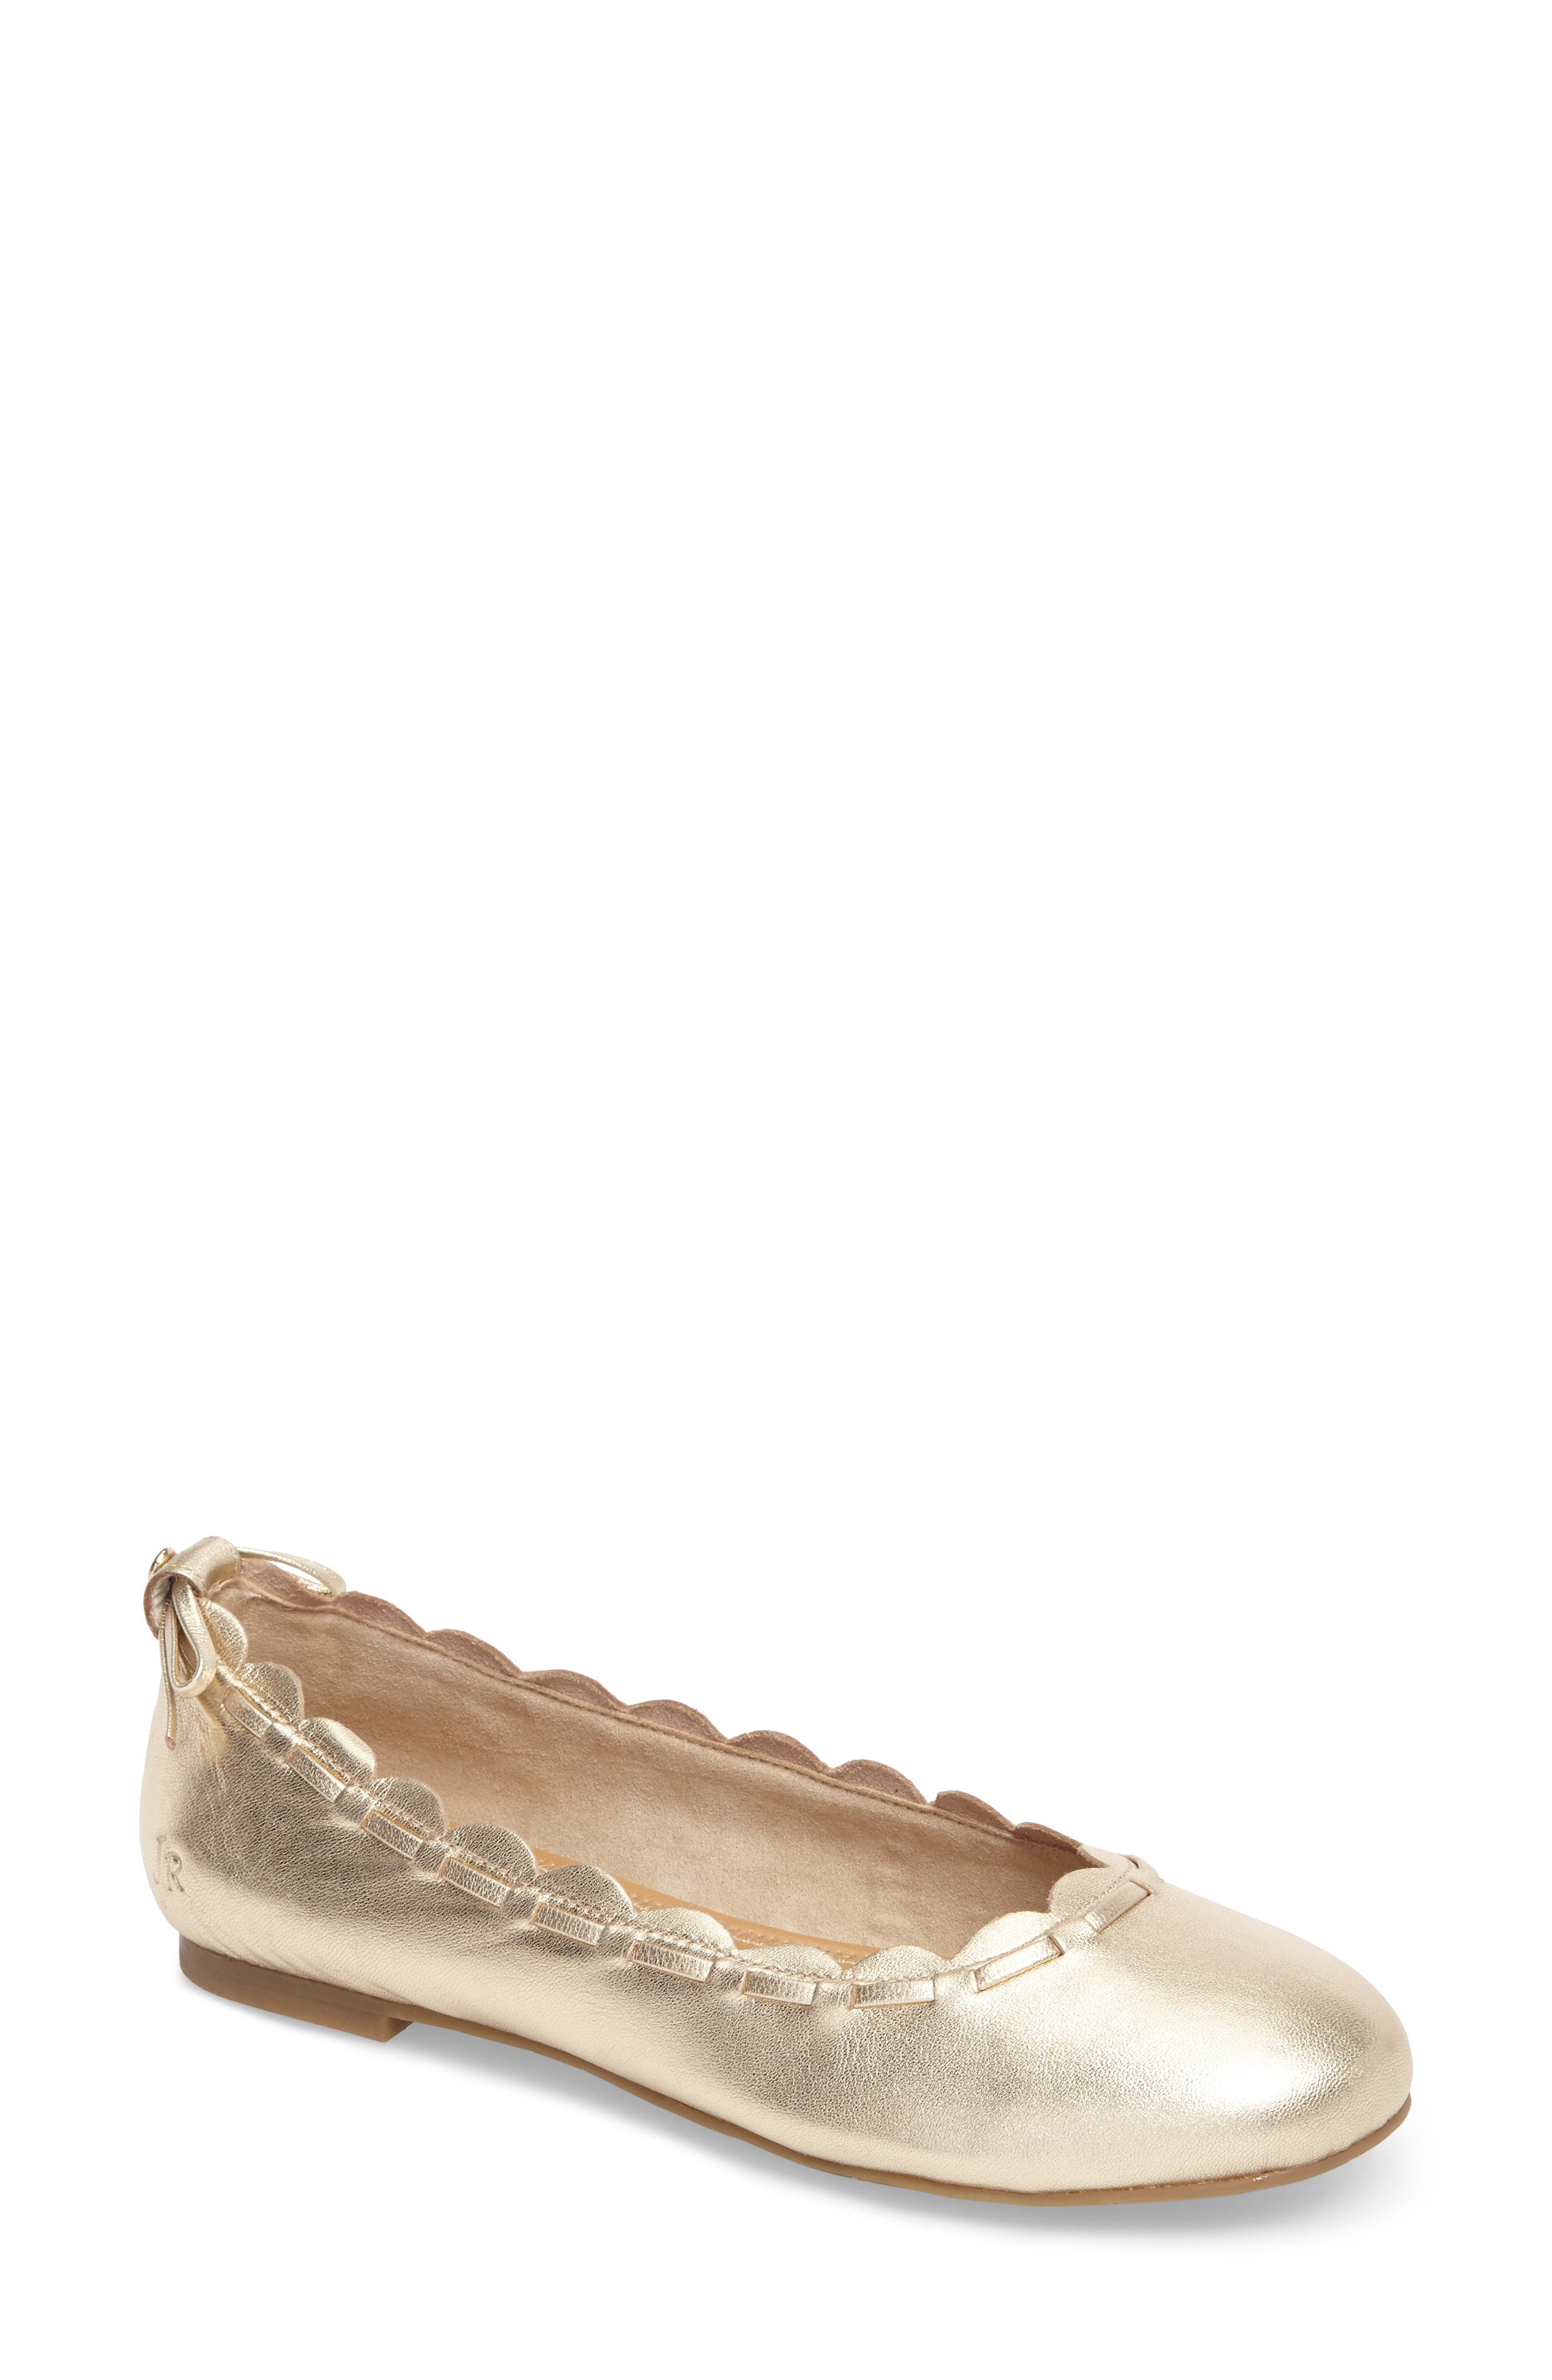 Lucie Scalloped Flat,                             Main thumbnail 1, color,                             040